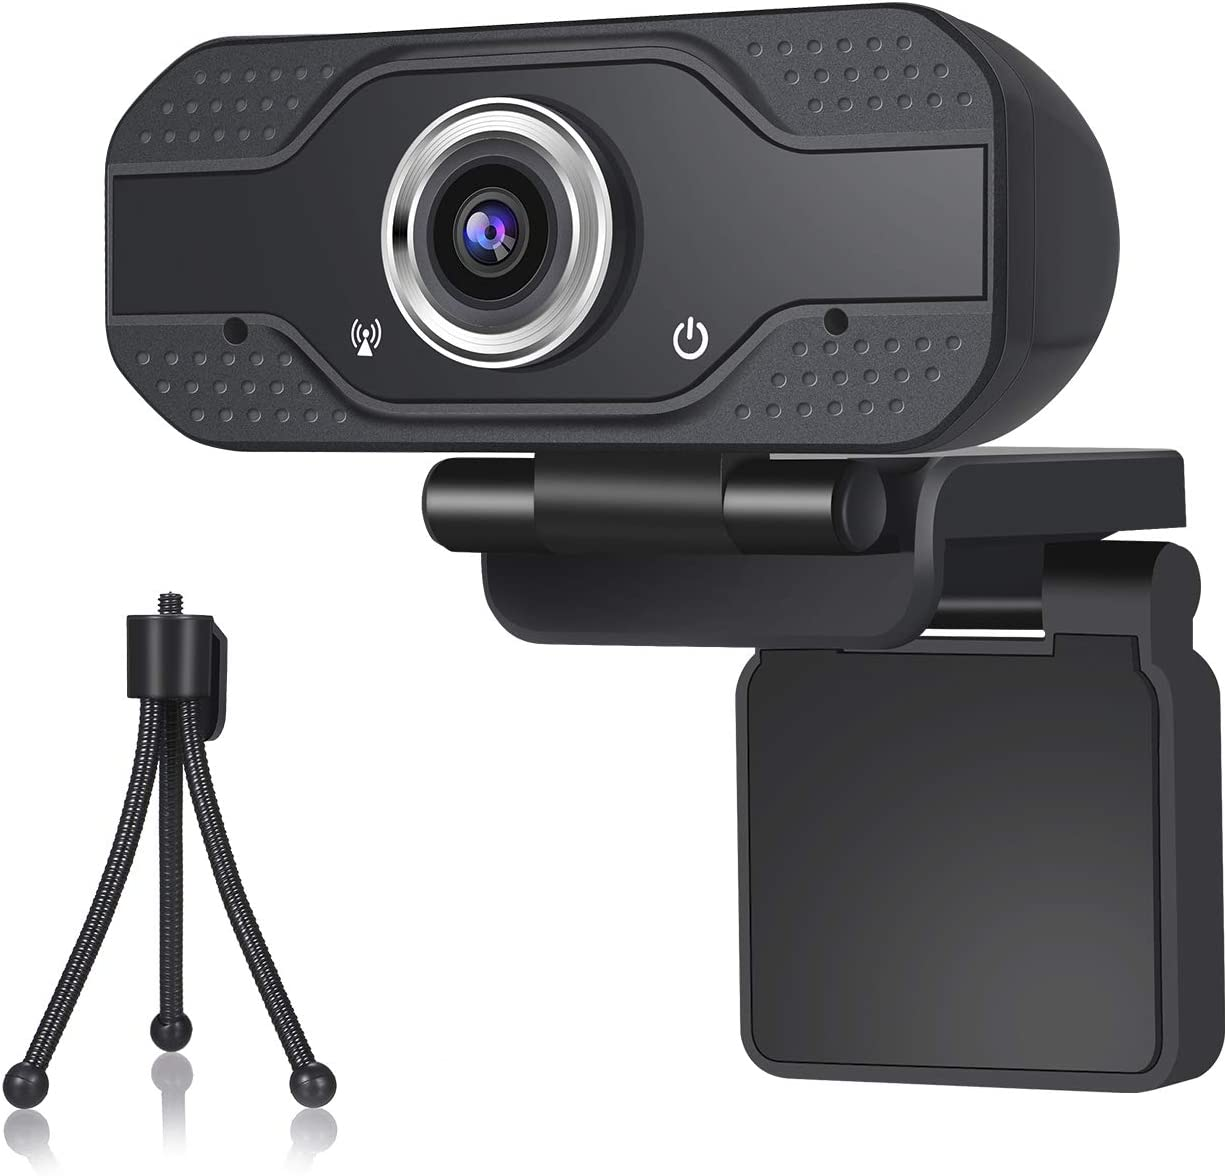 Pasavant Webcams with Microphone Web Camera for PC,1080p Webcam USB Vidoe Camera with Tripod, Streaming Webcam for Computers/Laptop/PC,for Conference Study Video Calling Skype (Black)